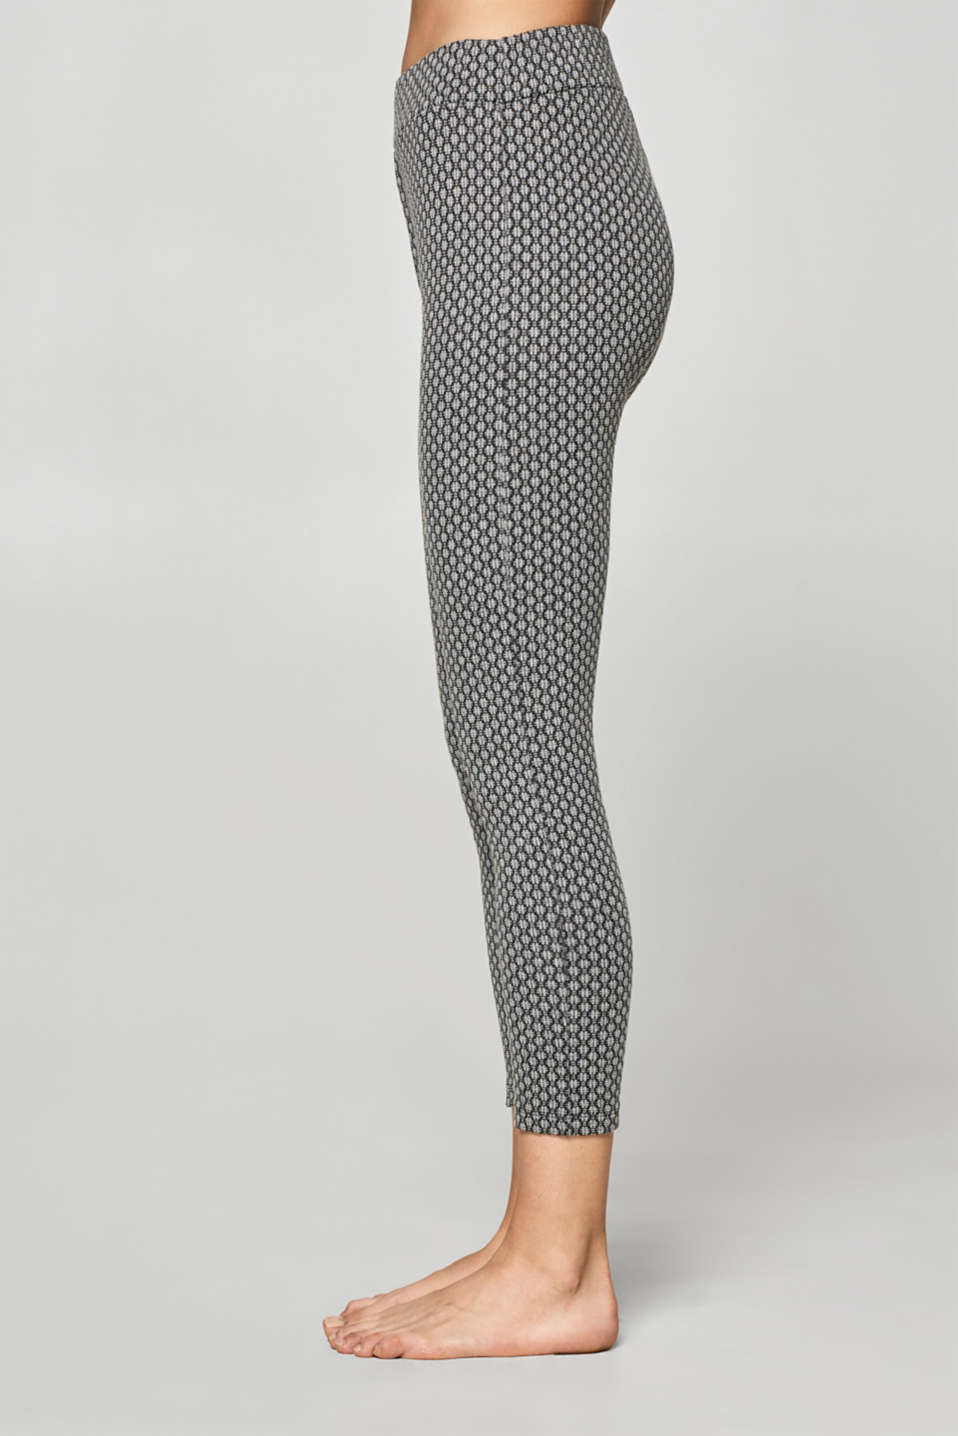 7/8-length leggings with a jacquard pattern